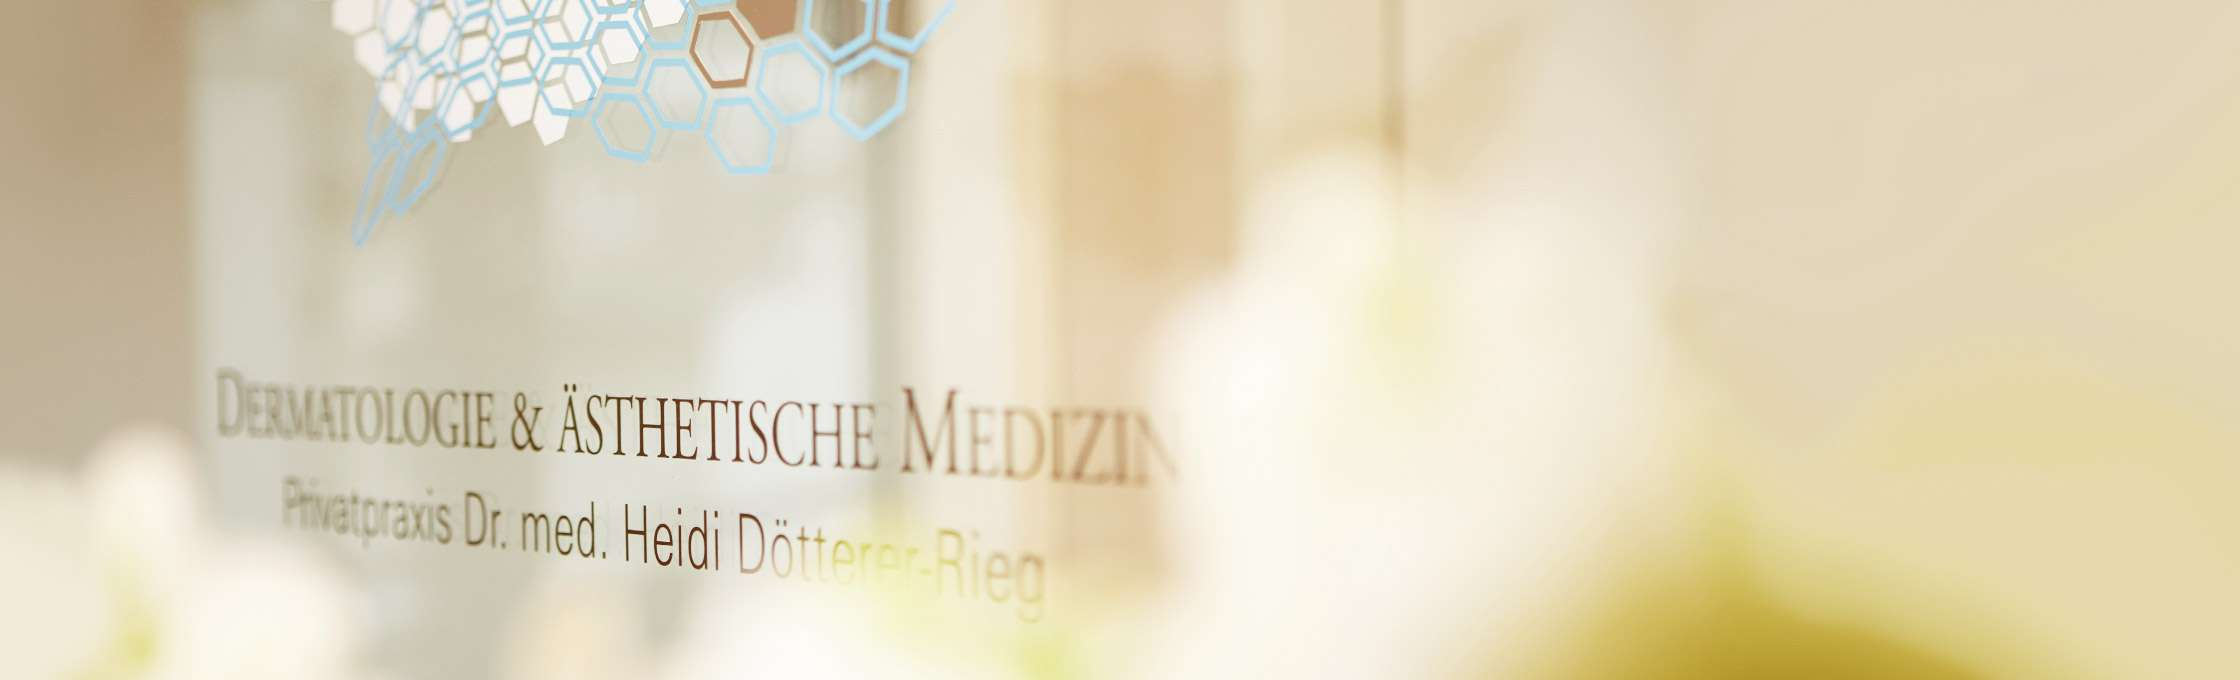 The company logo of private practice Dr. med. Heidi Dötterer-Rieg & Colleagues for dermatology and aesthetic medicine as a plot on a glass. In the foreground blurred fresh white orchids are to be seen. Dermatologist's Office in Frankfurt welcomes you!